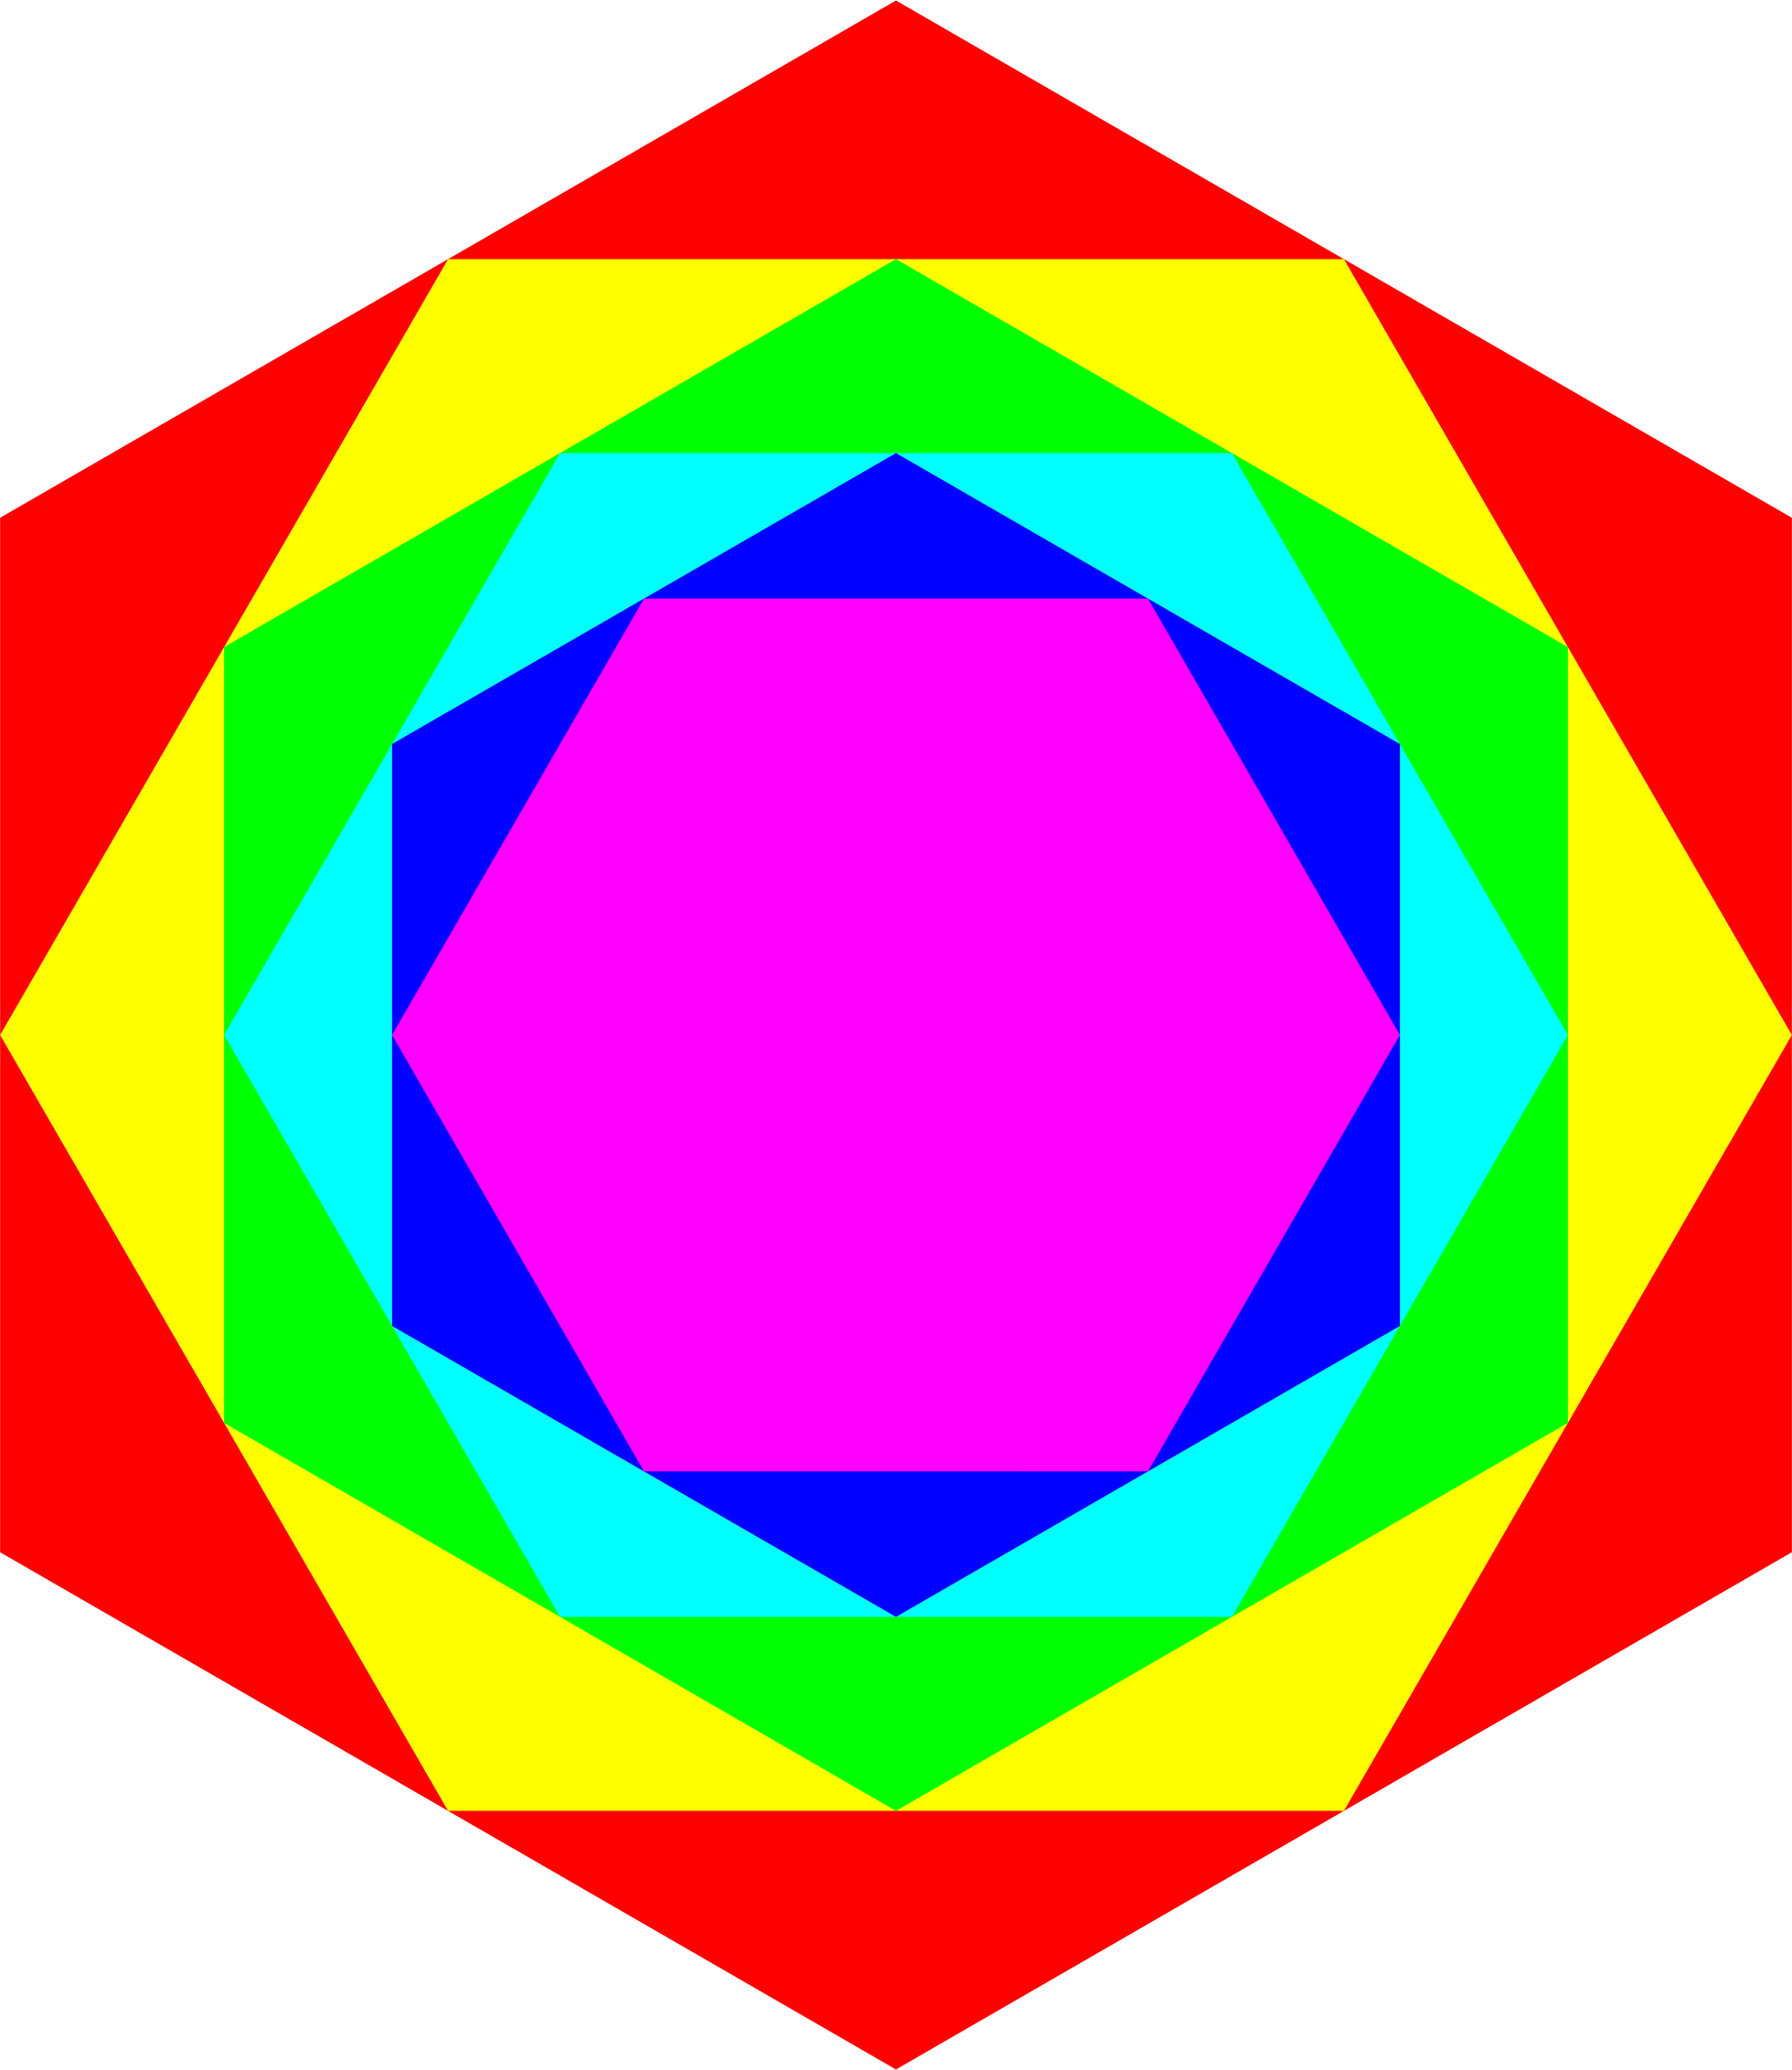 Colorful Hexagons 2-18-2016 by 10binary